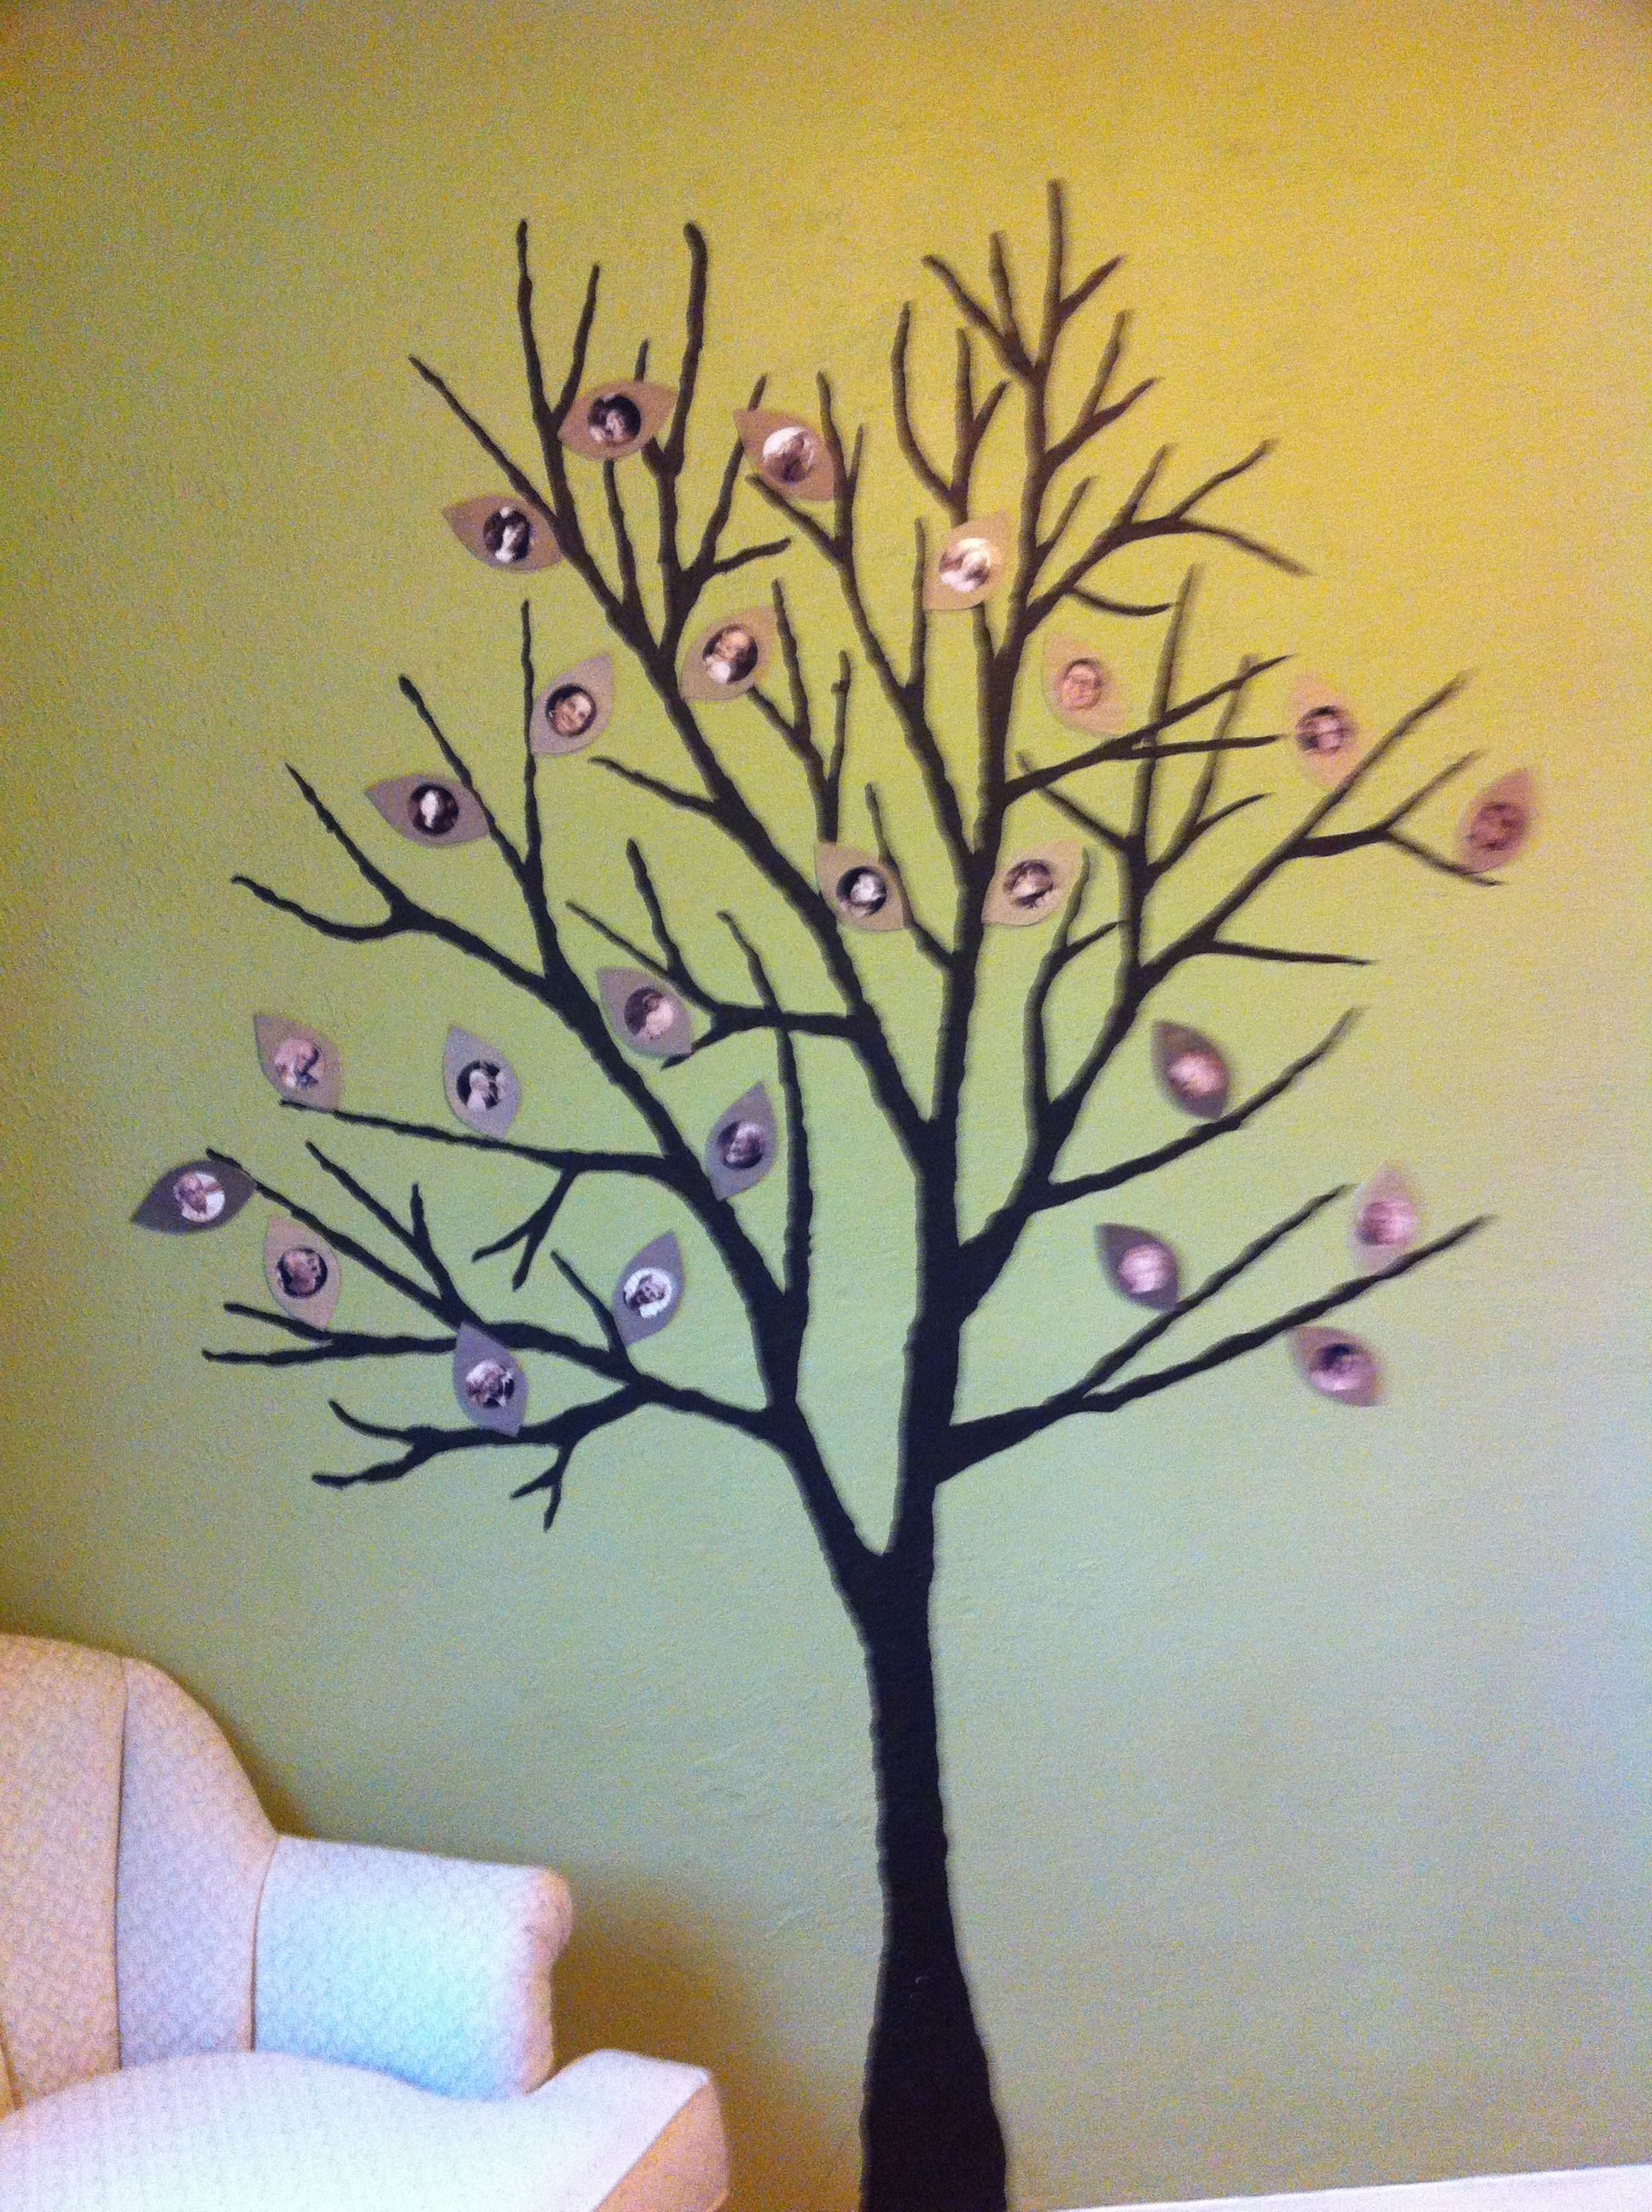 How to paint a tree on your wall - Syd S Family Tree Mural Find Your Favorite Tree Outline Project It On A Wall